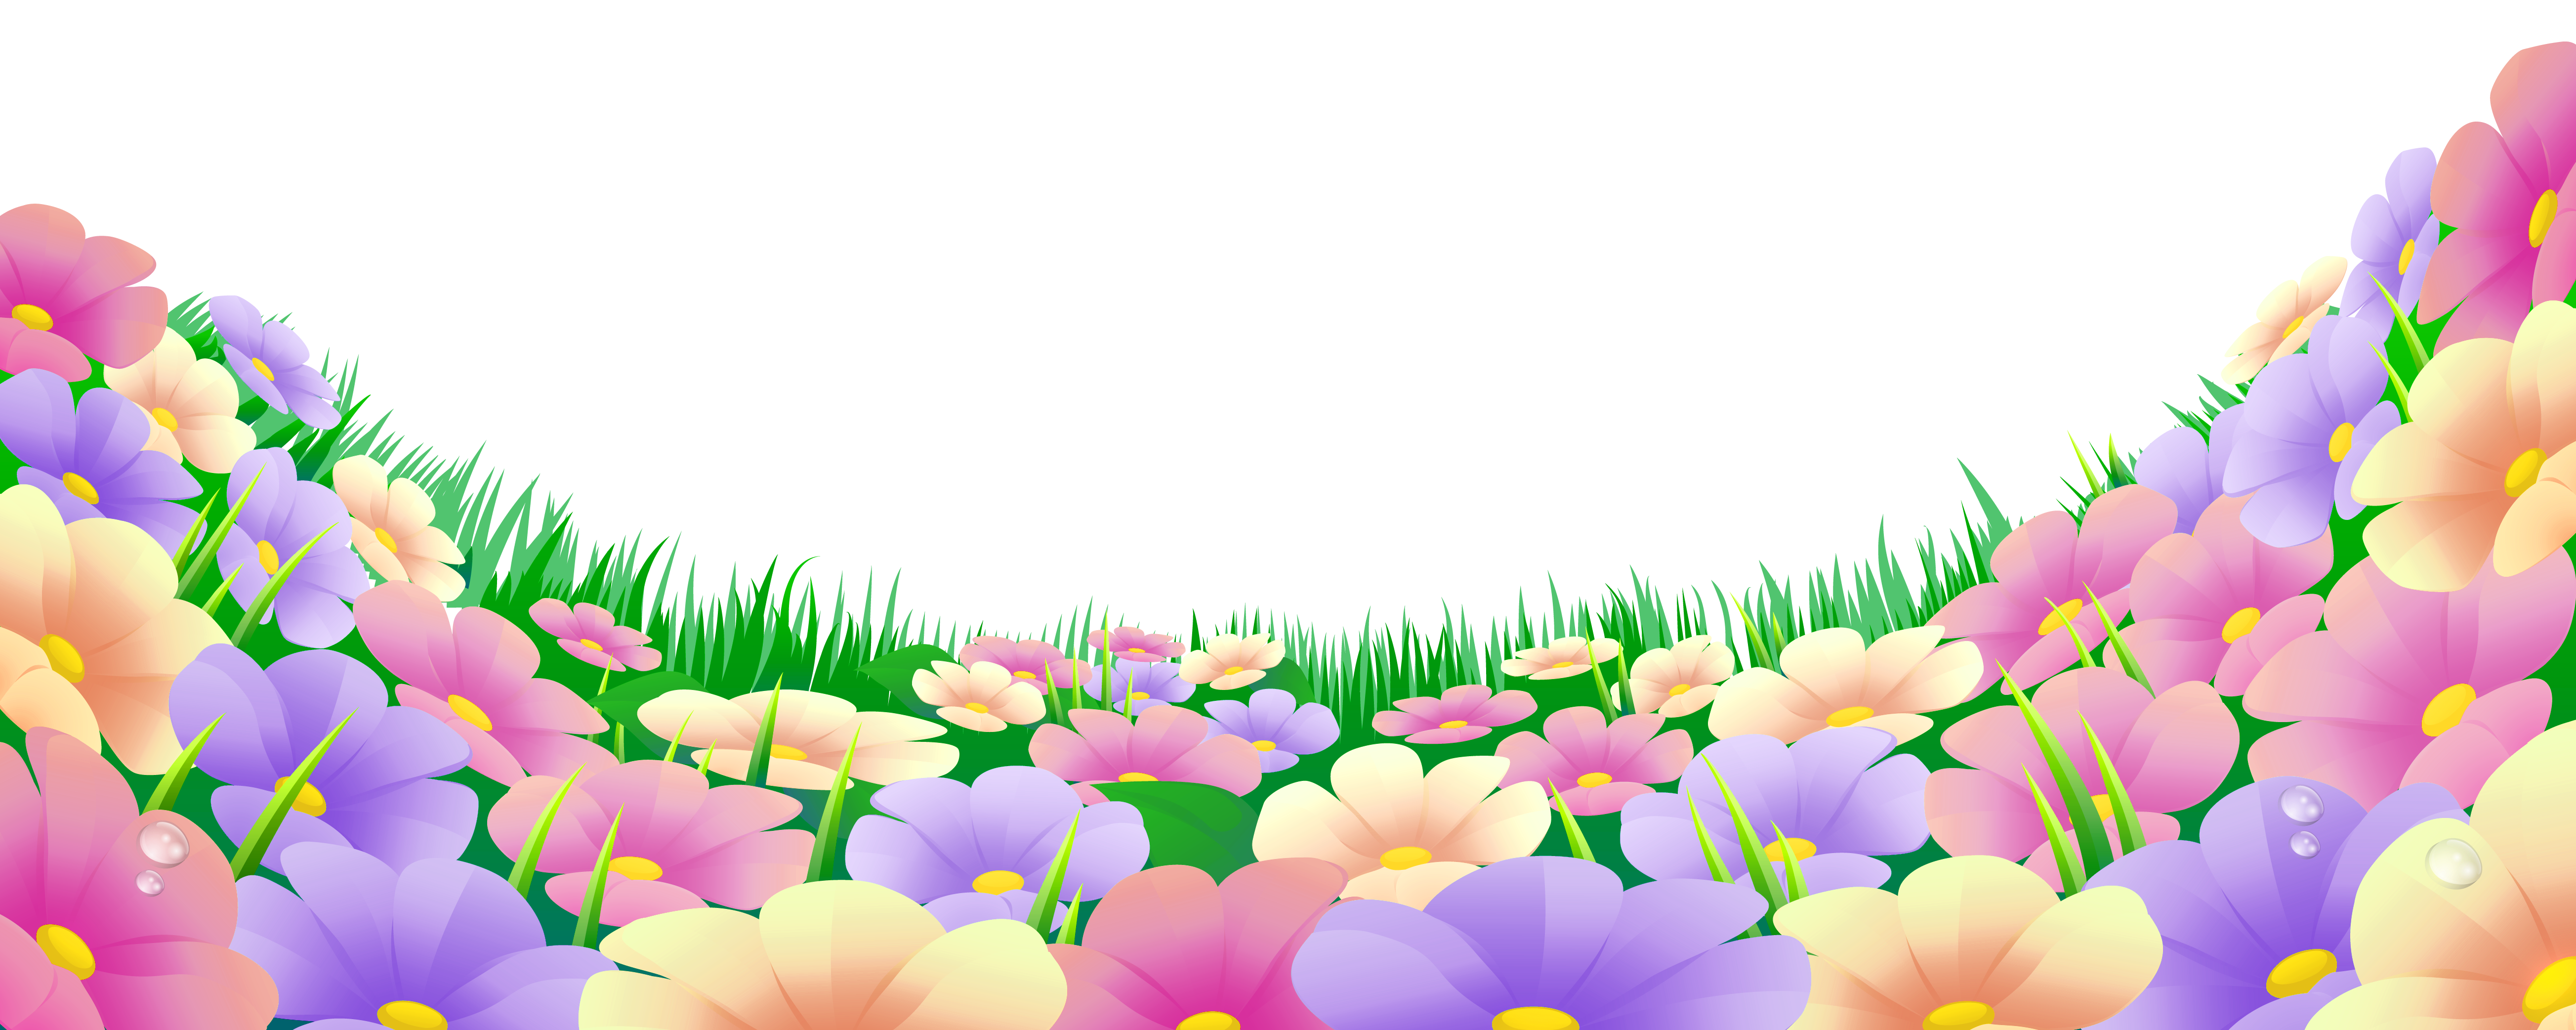 garden clipart flower bed picture 1188929 garden clipart flower bed picture 1188929 garden clipart flower bed